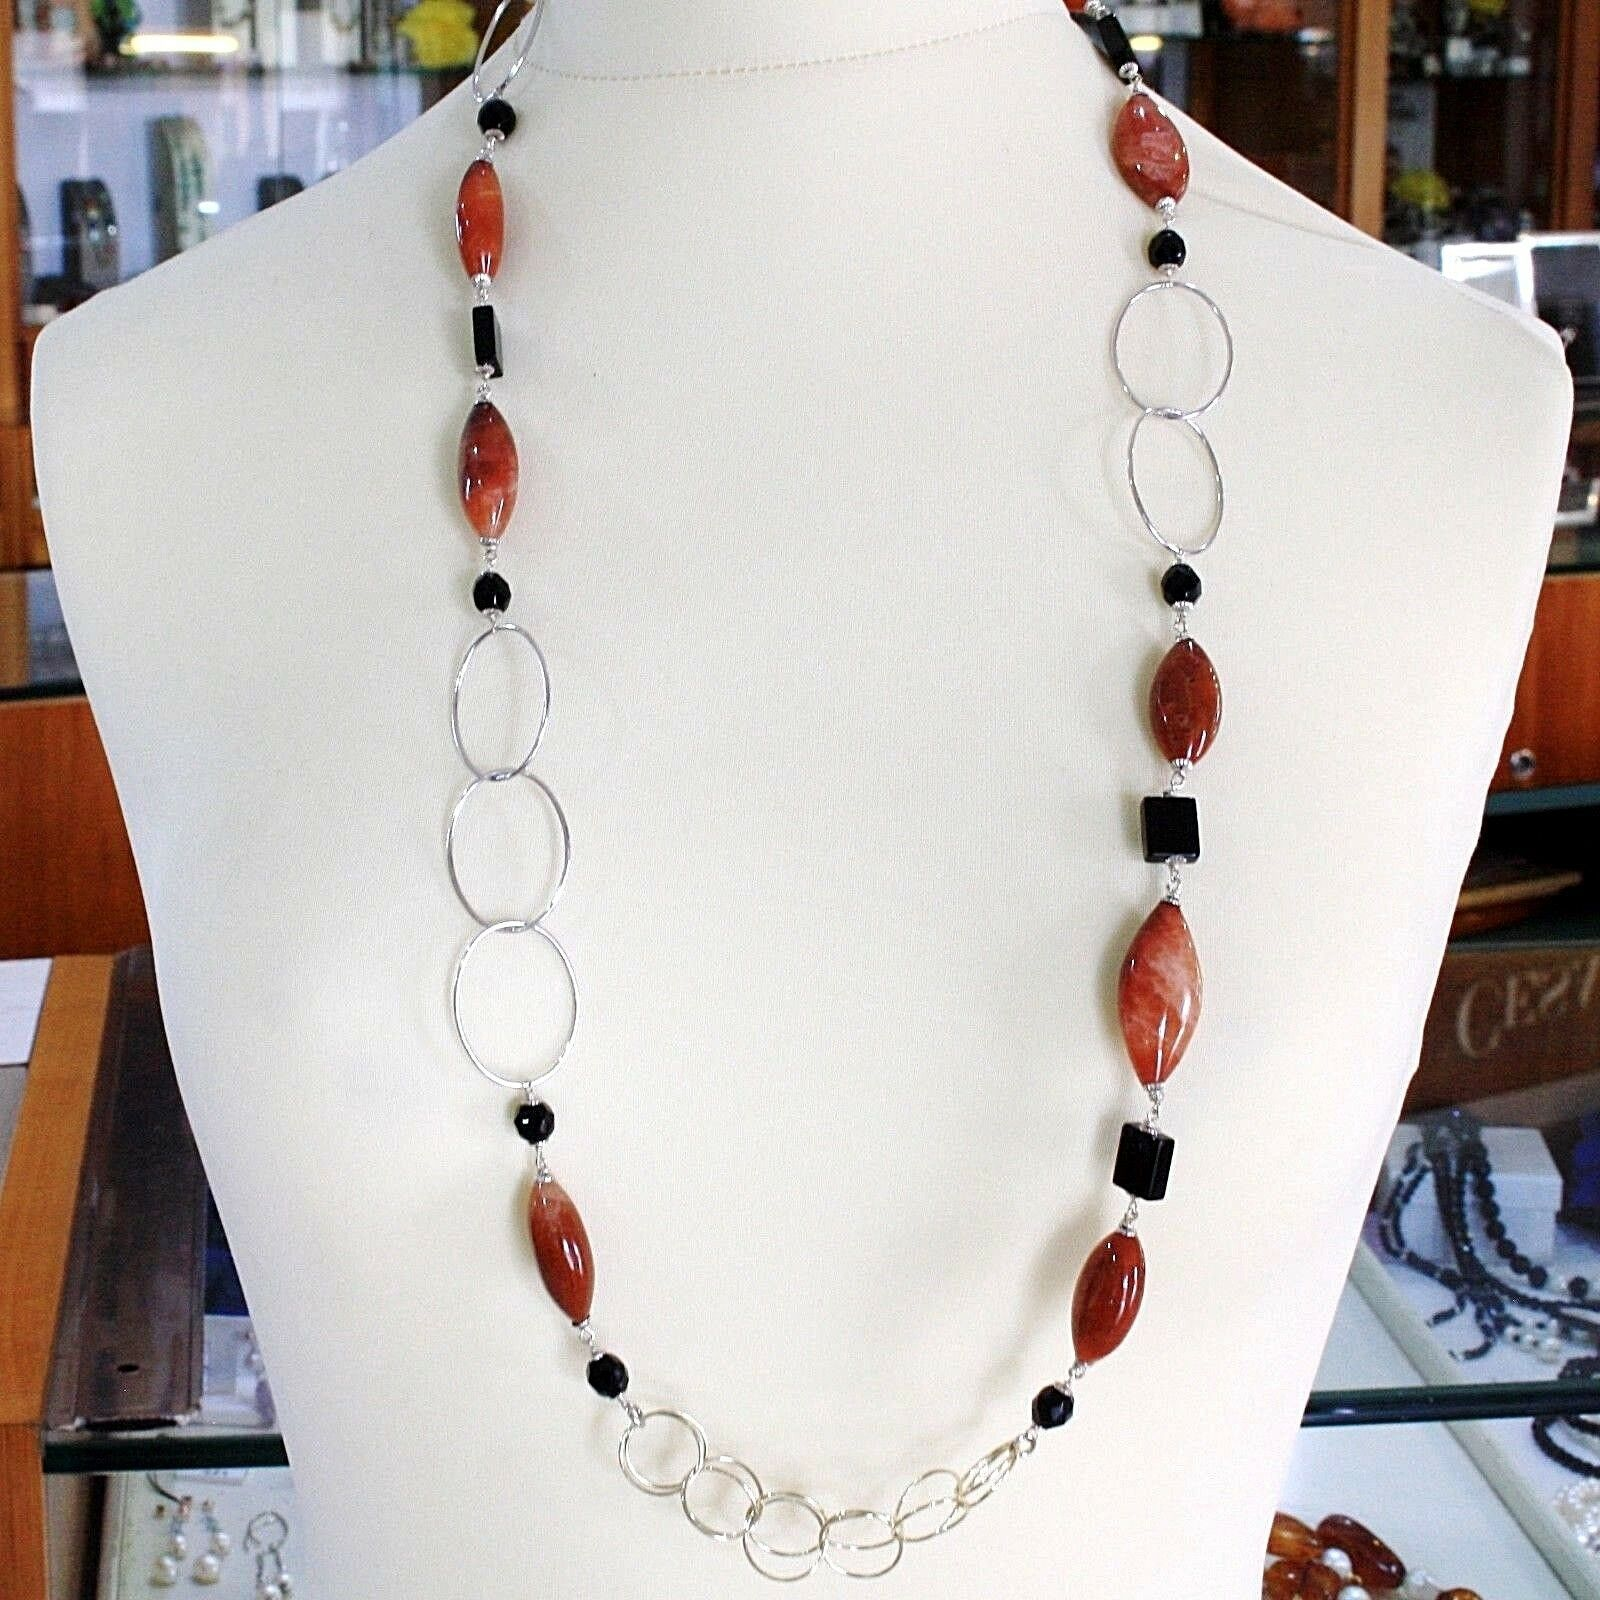 Necklace Silver 925, Jasper Oval, Onyx, Length 90 cm, Circles Large